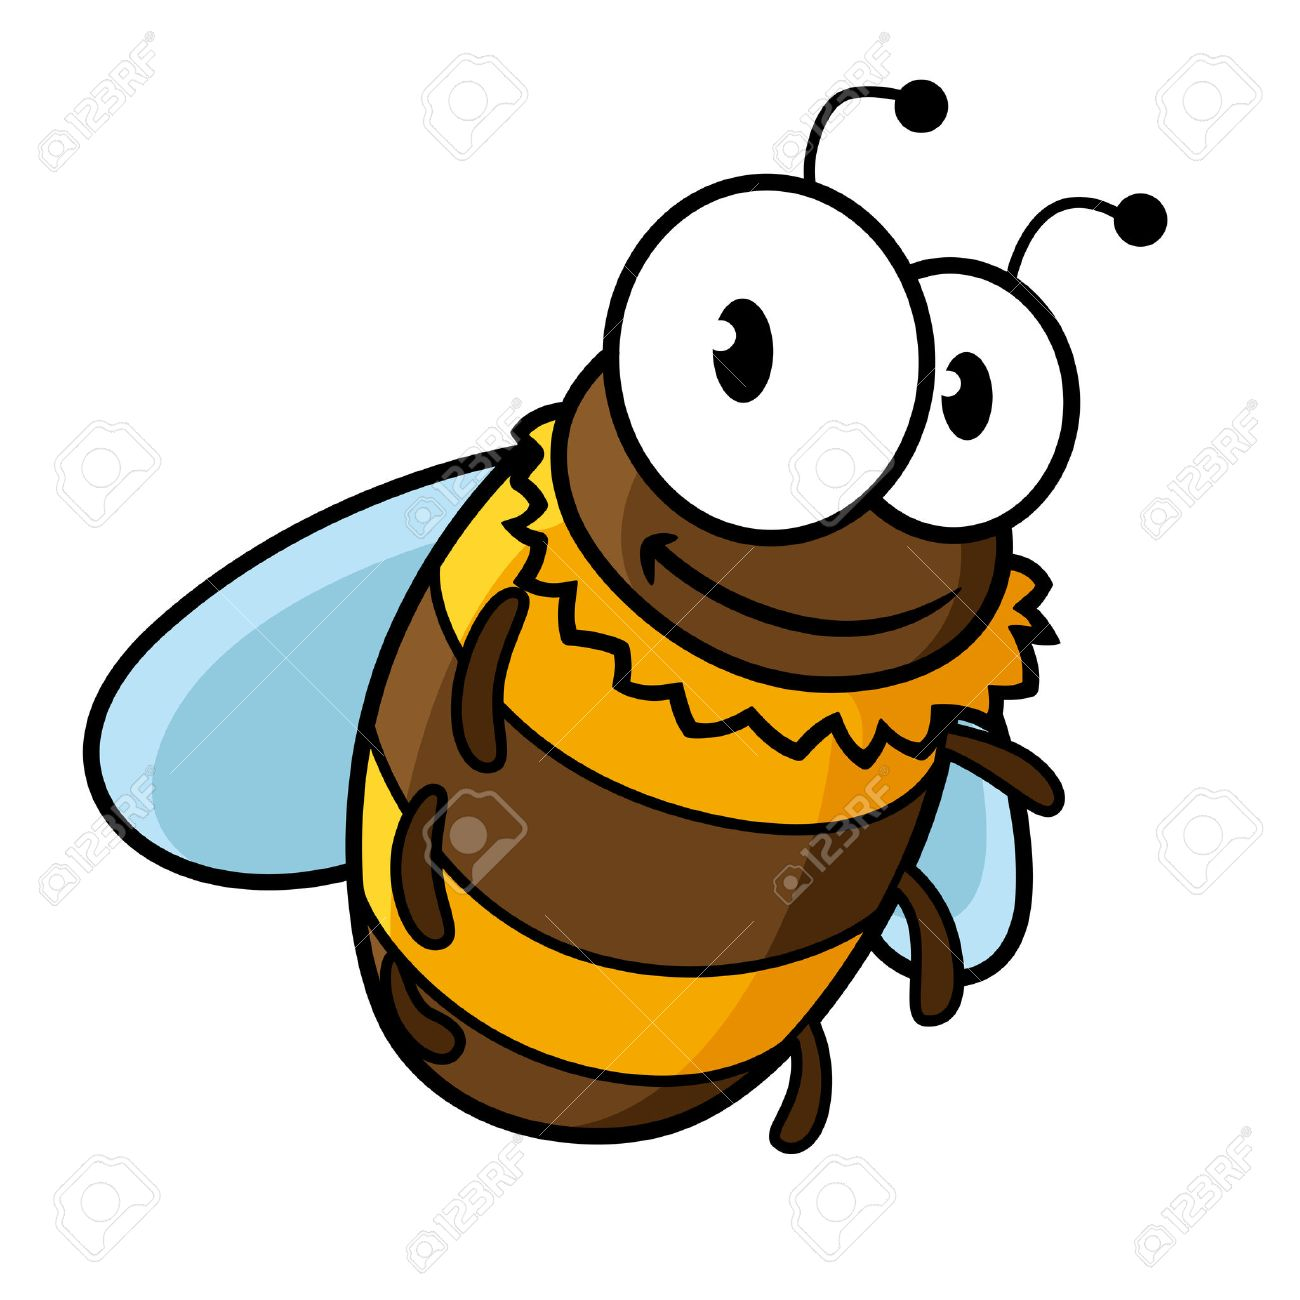 happy flying cartoon bumble bee or honey bee with a striped body rh 123rf com bumble bee cartoon image Bumble Bee Car